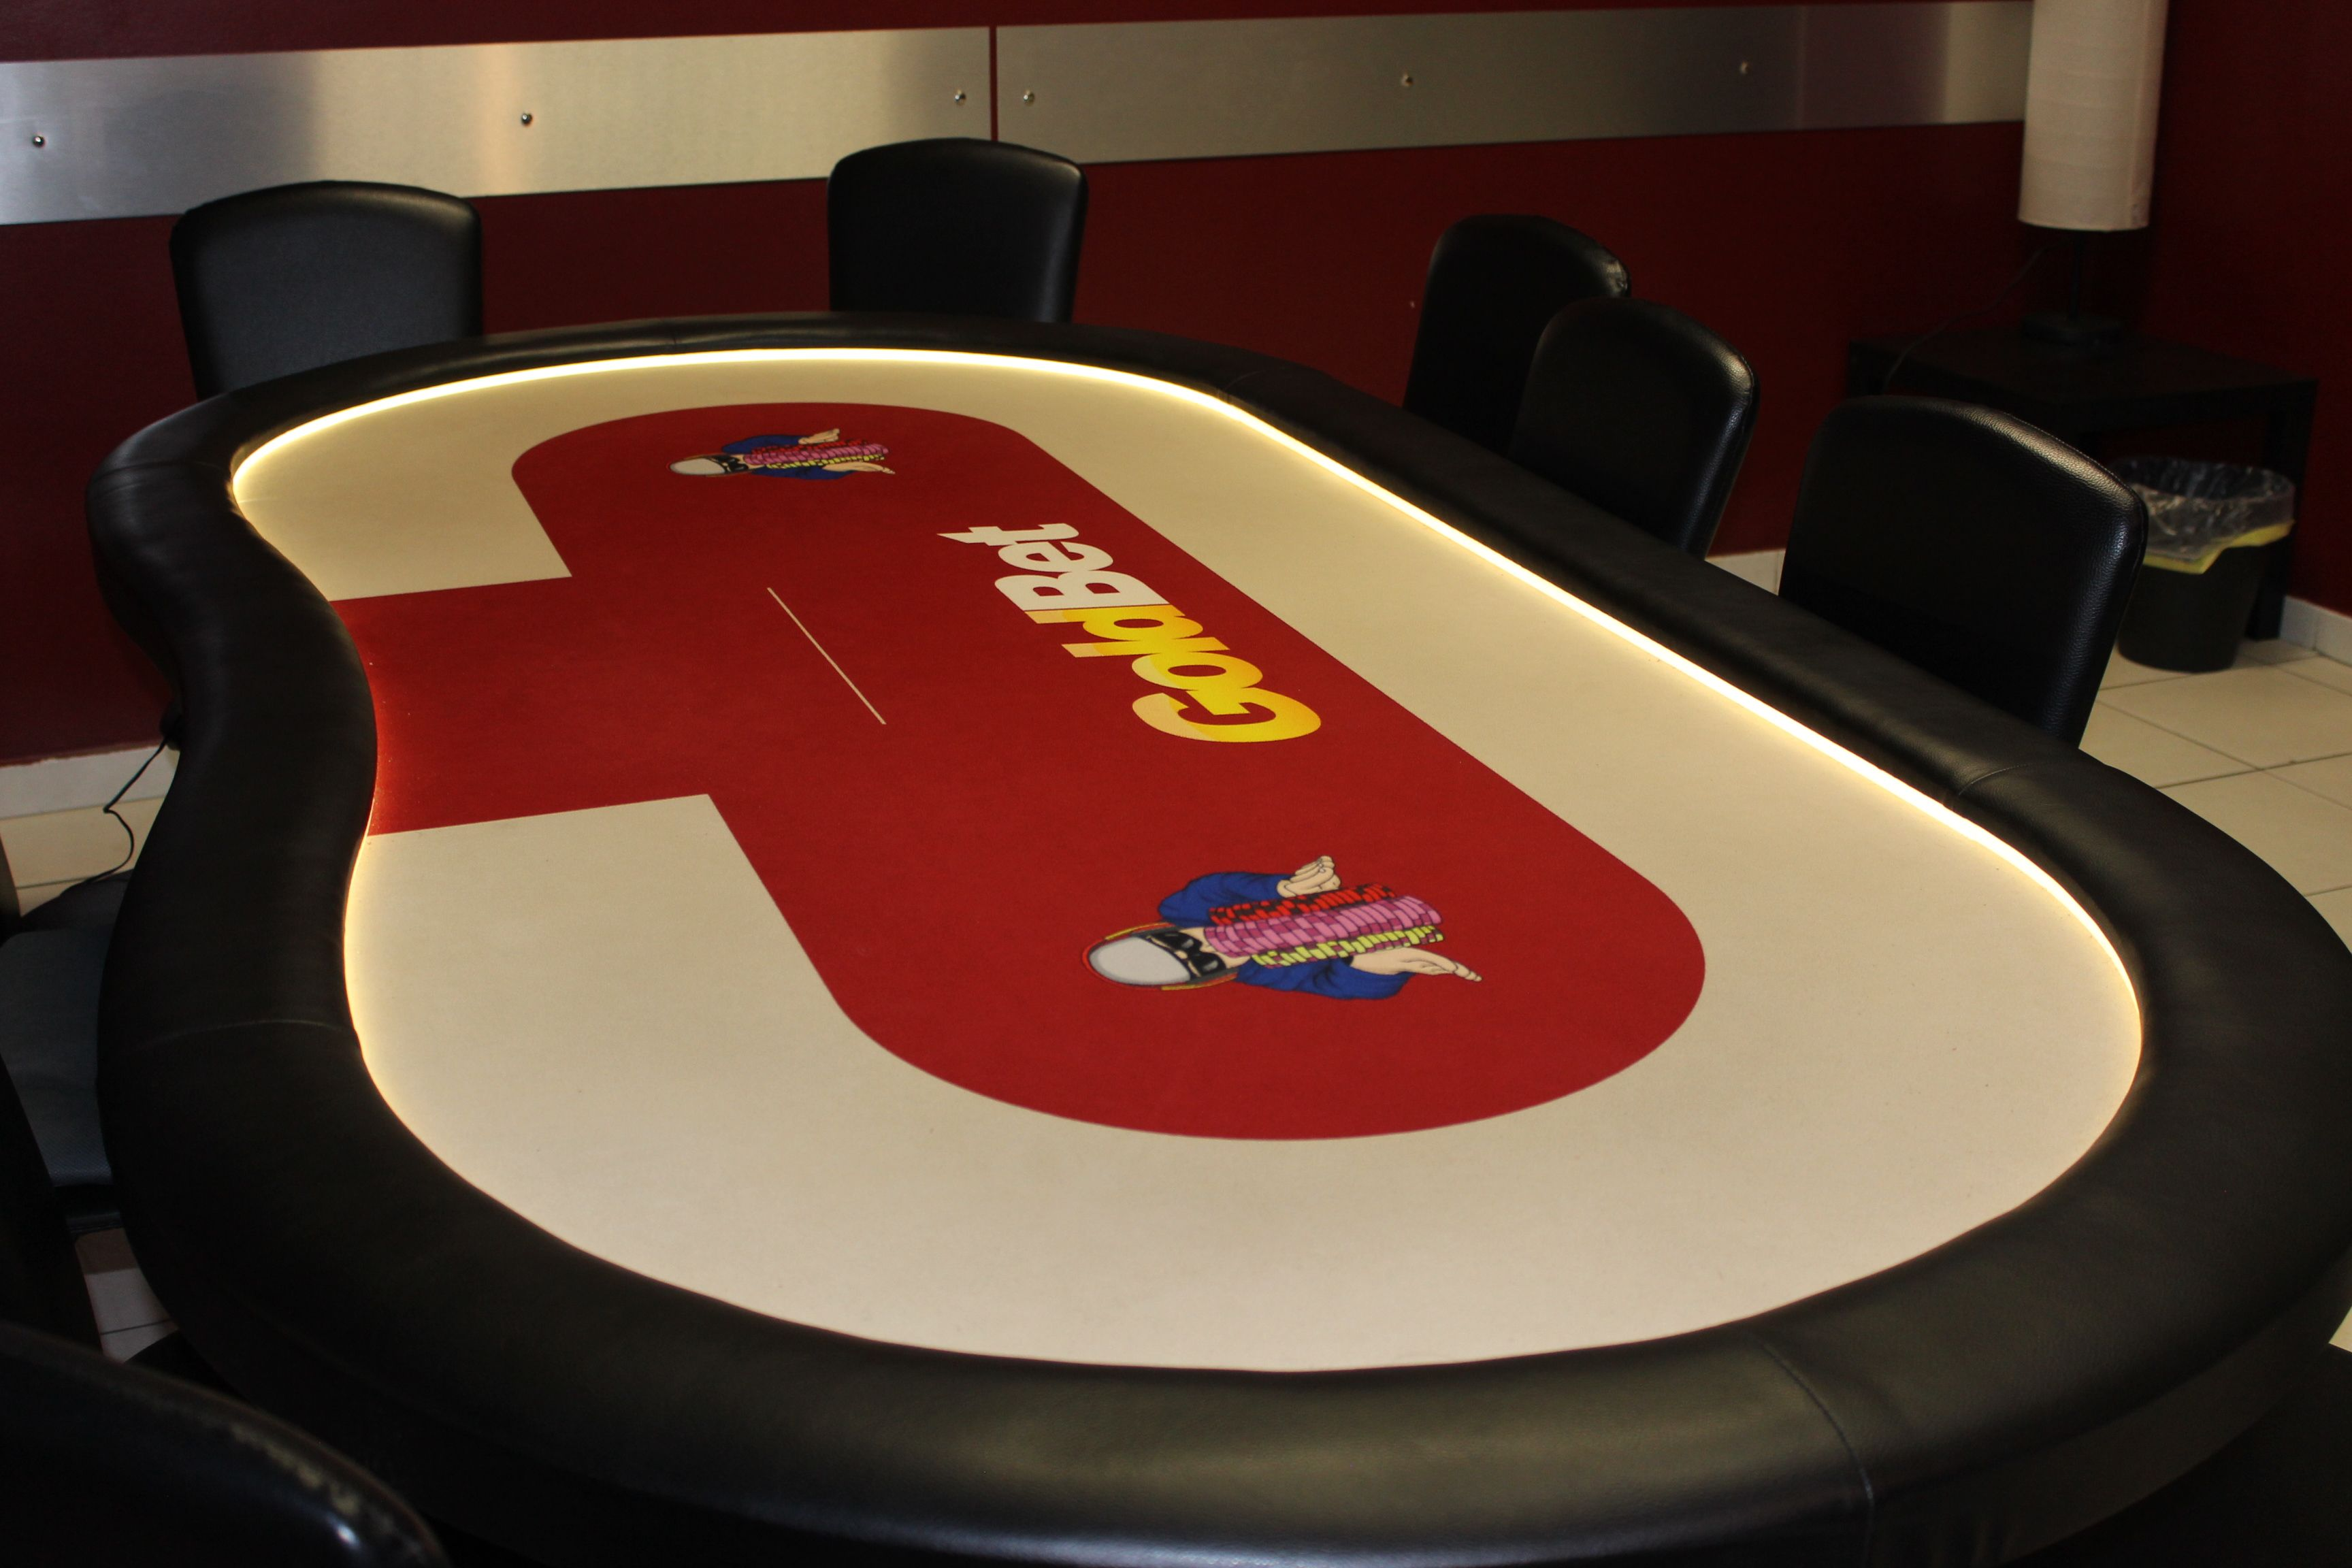 Texas holdem seating positions